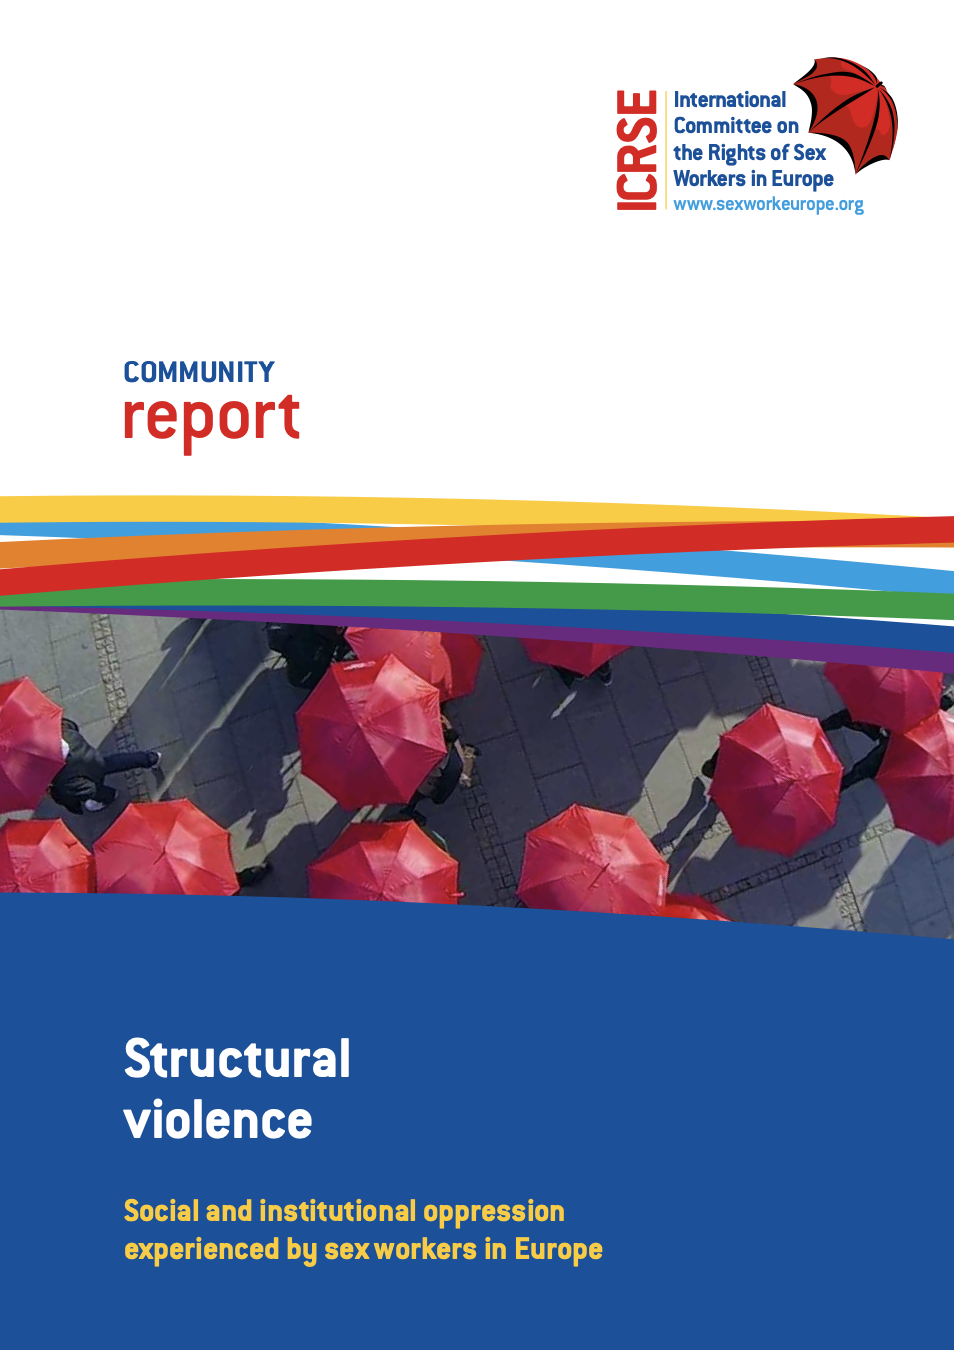 Community Report on Structural Violence